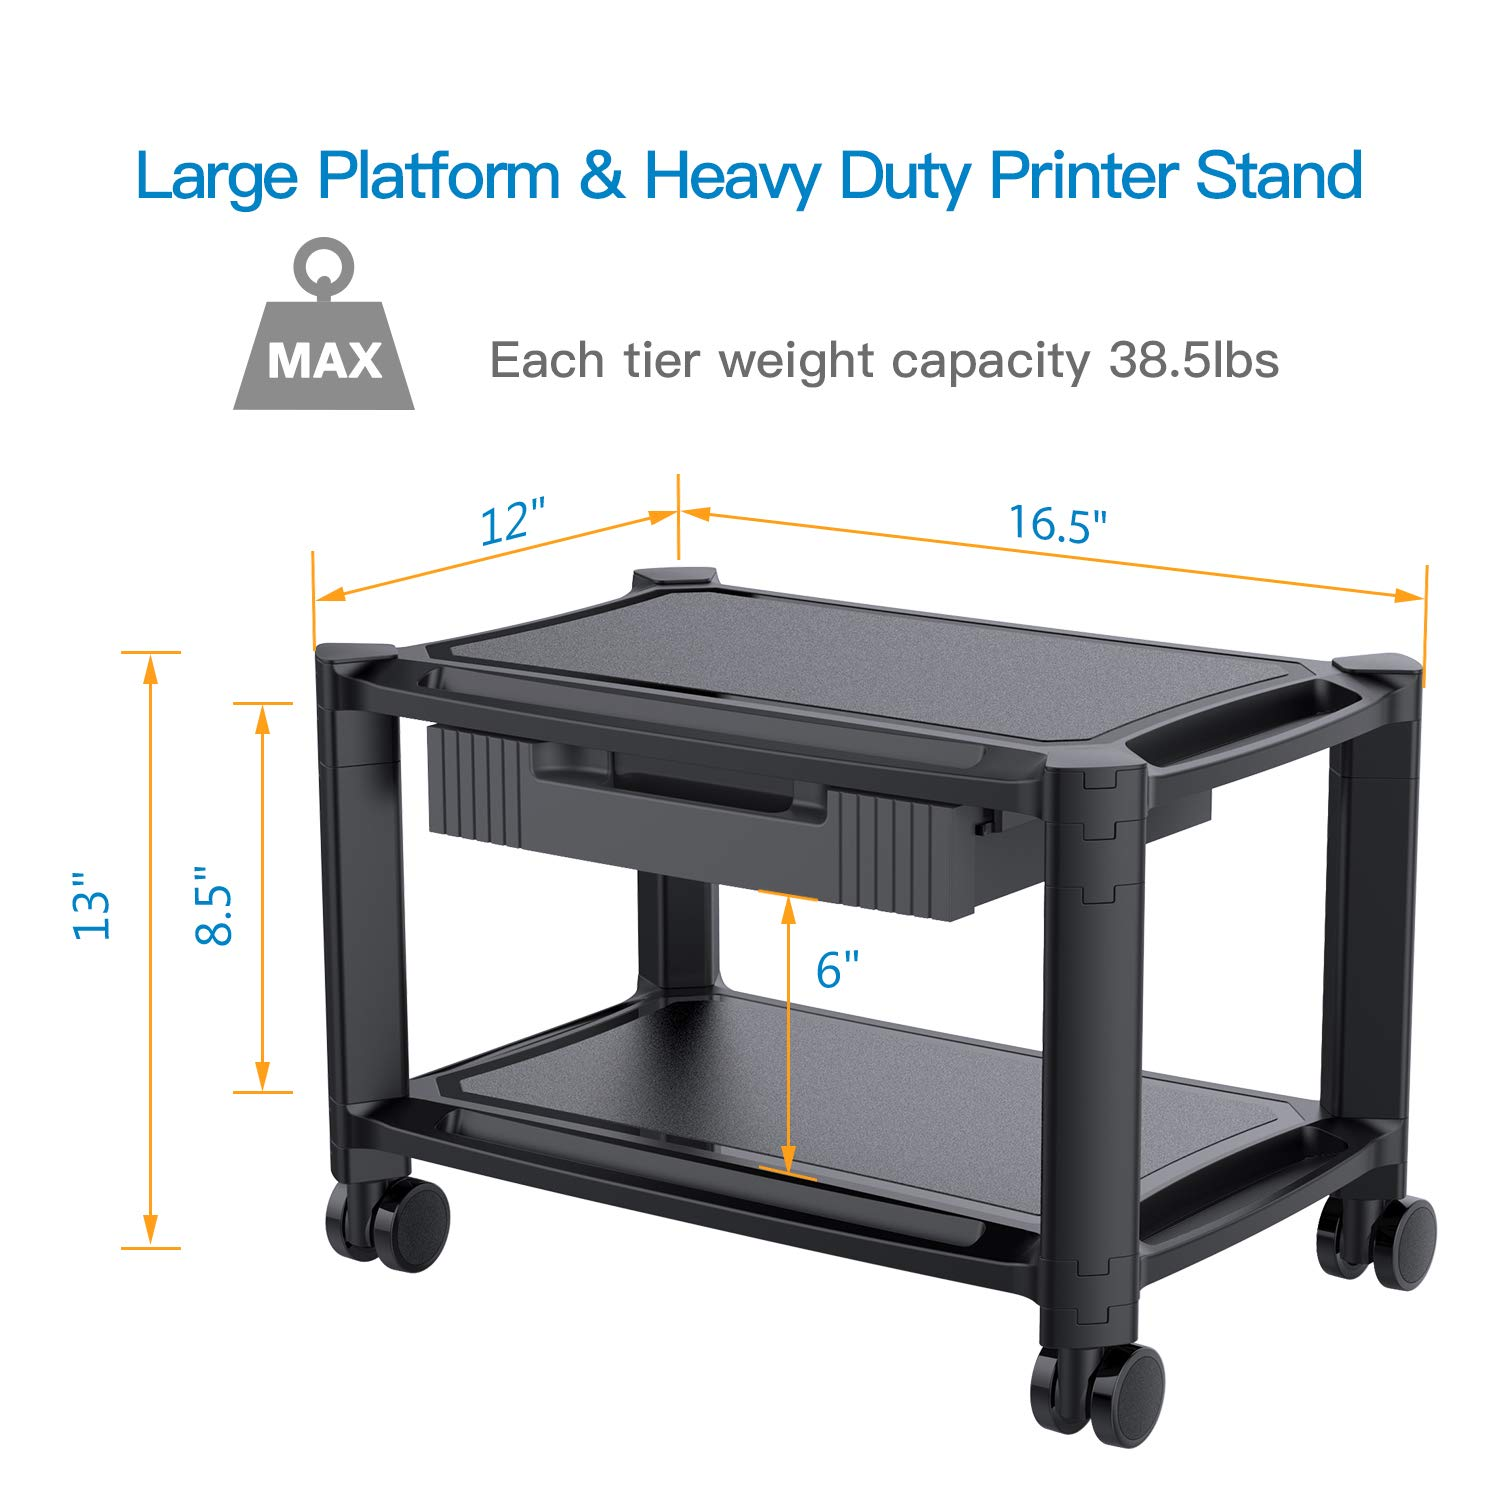 Printer Stand - Under Desk Printer Cart with 4 Rolling Wheels & Storage Drawer, Durable Printer Riser Shelf for Fax, Scanner, Office Supplies by HUANUO by HUANUO (Image #6)